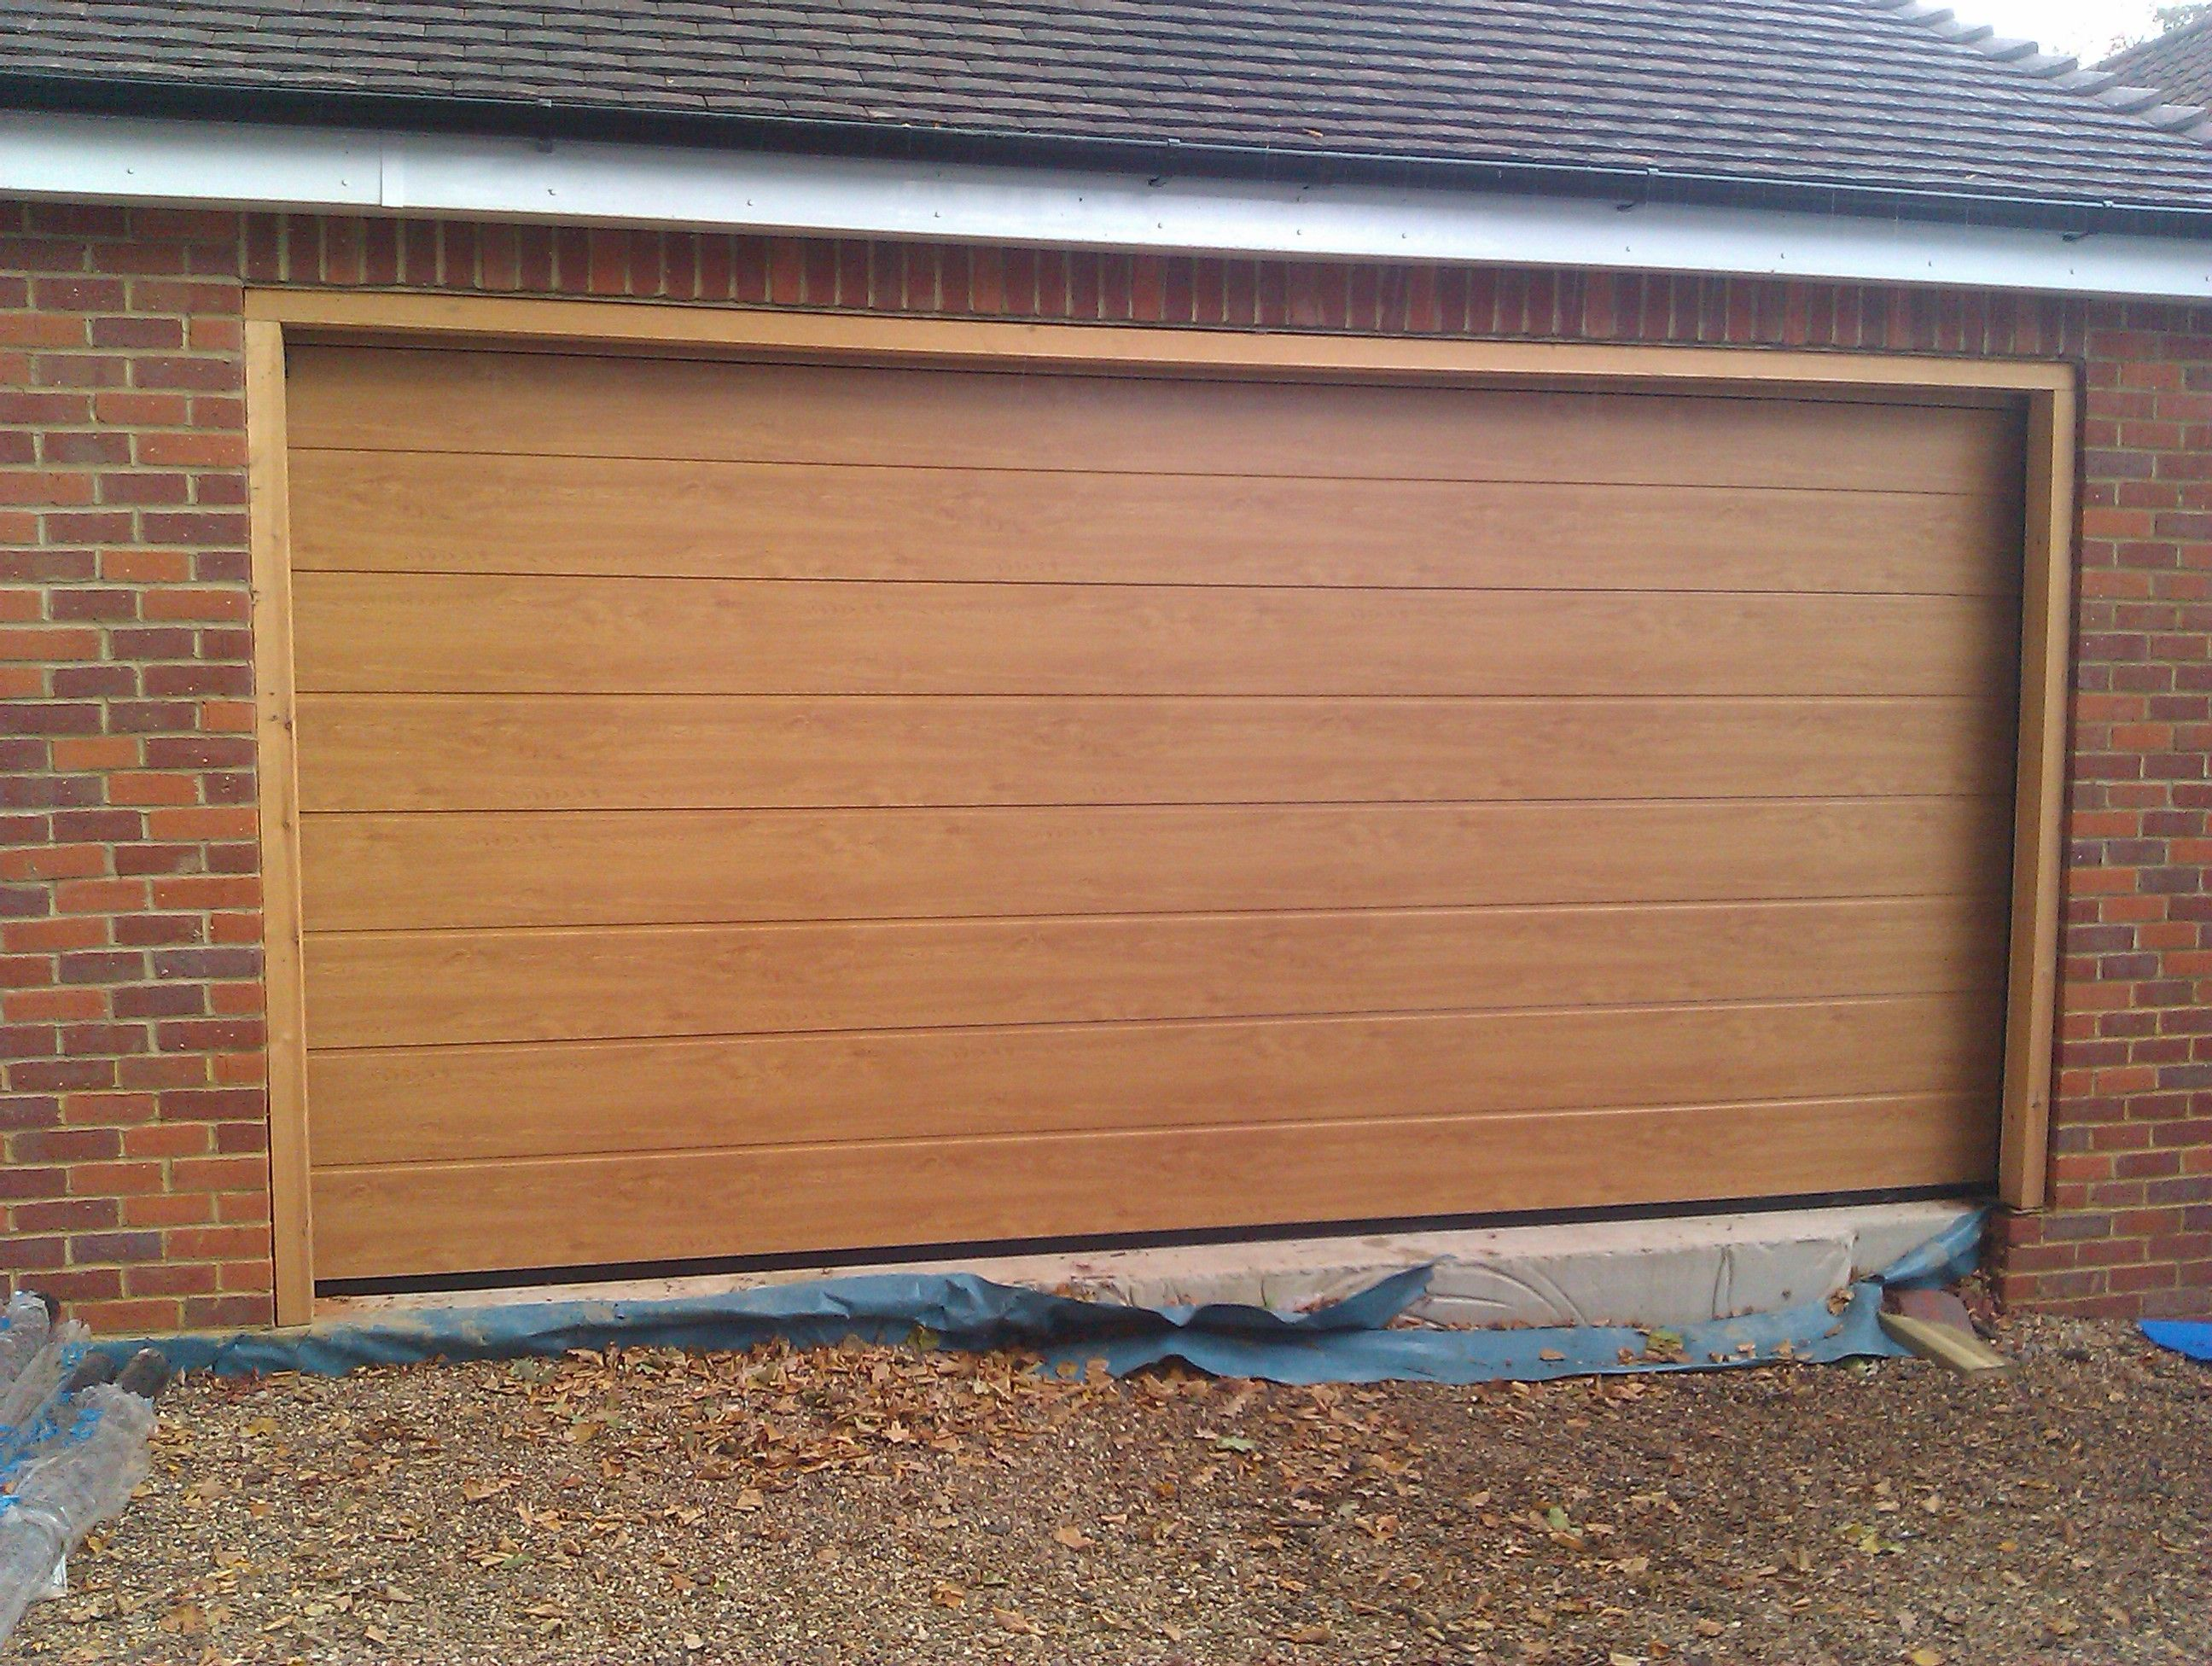 1952 #8F613C Hormann Sectional Garage Door Wood   Search Garage Door  image Wooden Sectional Garage Doors 36432592